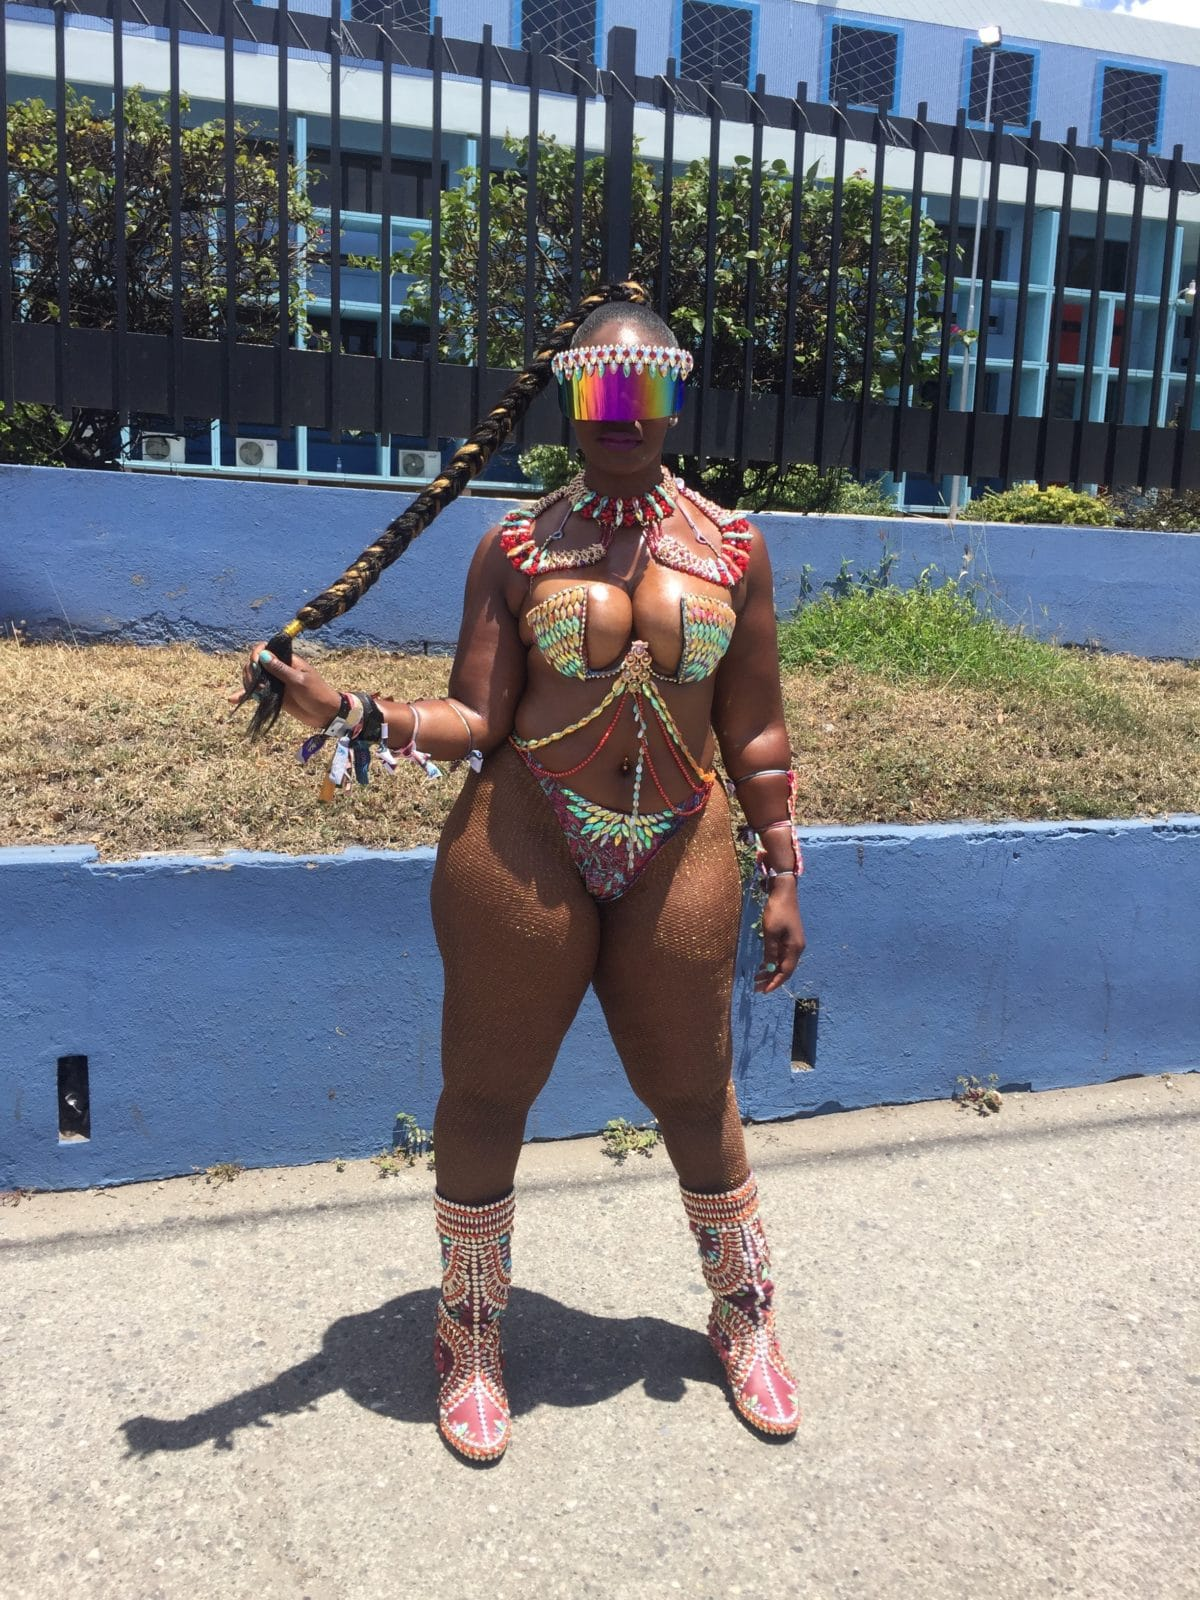 EveryBODY Is Welcome! The Curvy Girl's Guide To Carnival Costumes